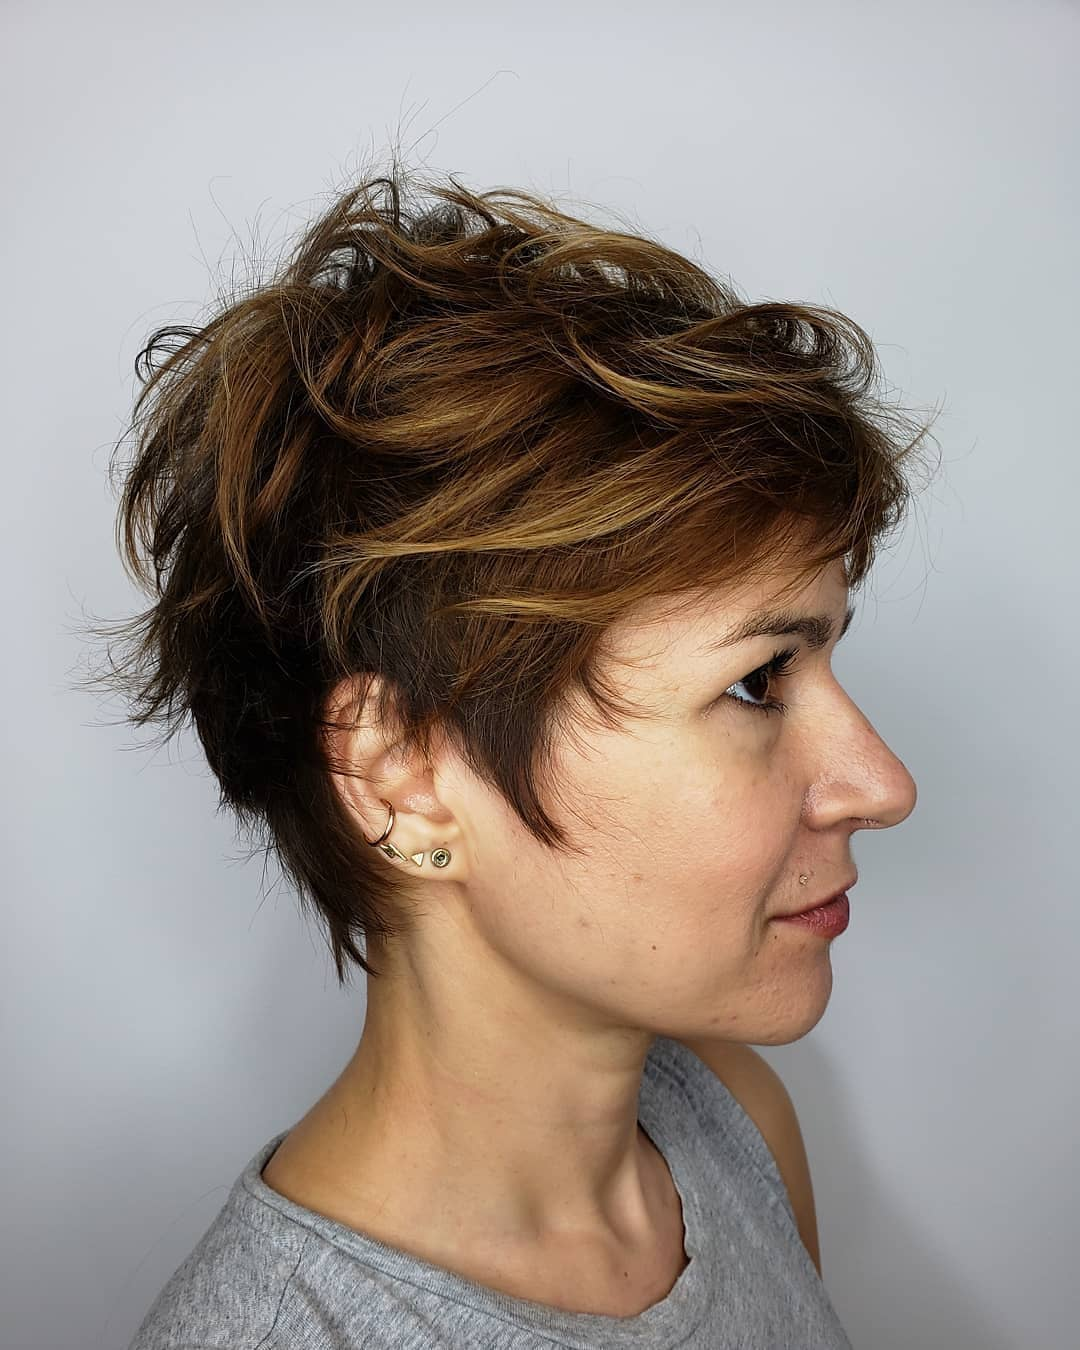 Top 10 Most Flattering Pixie Haircuts for Women, Short ...